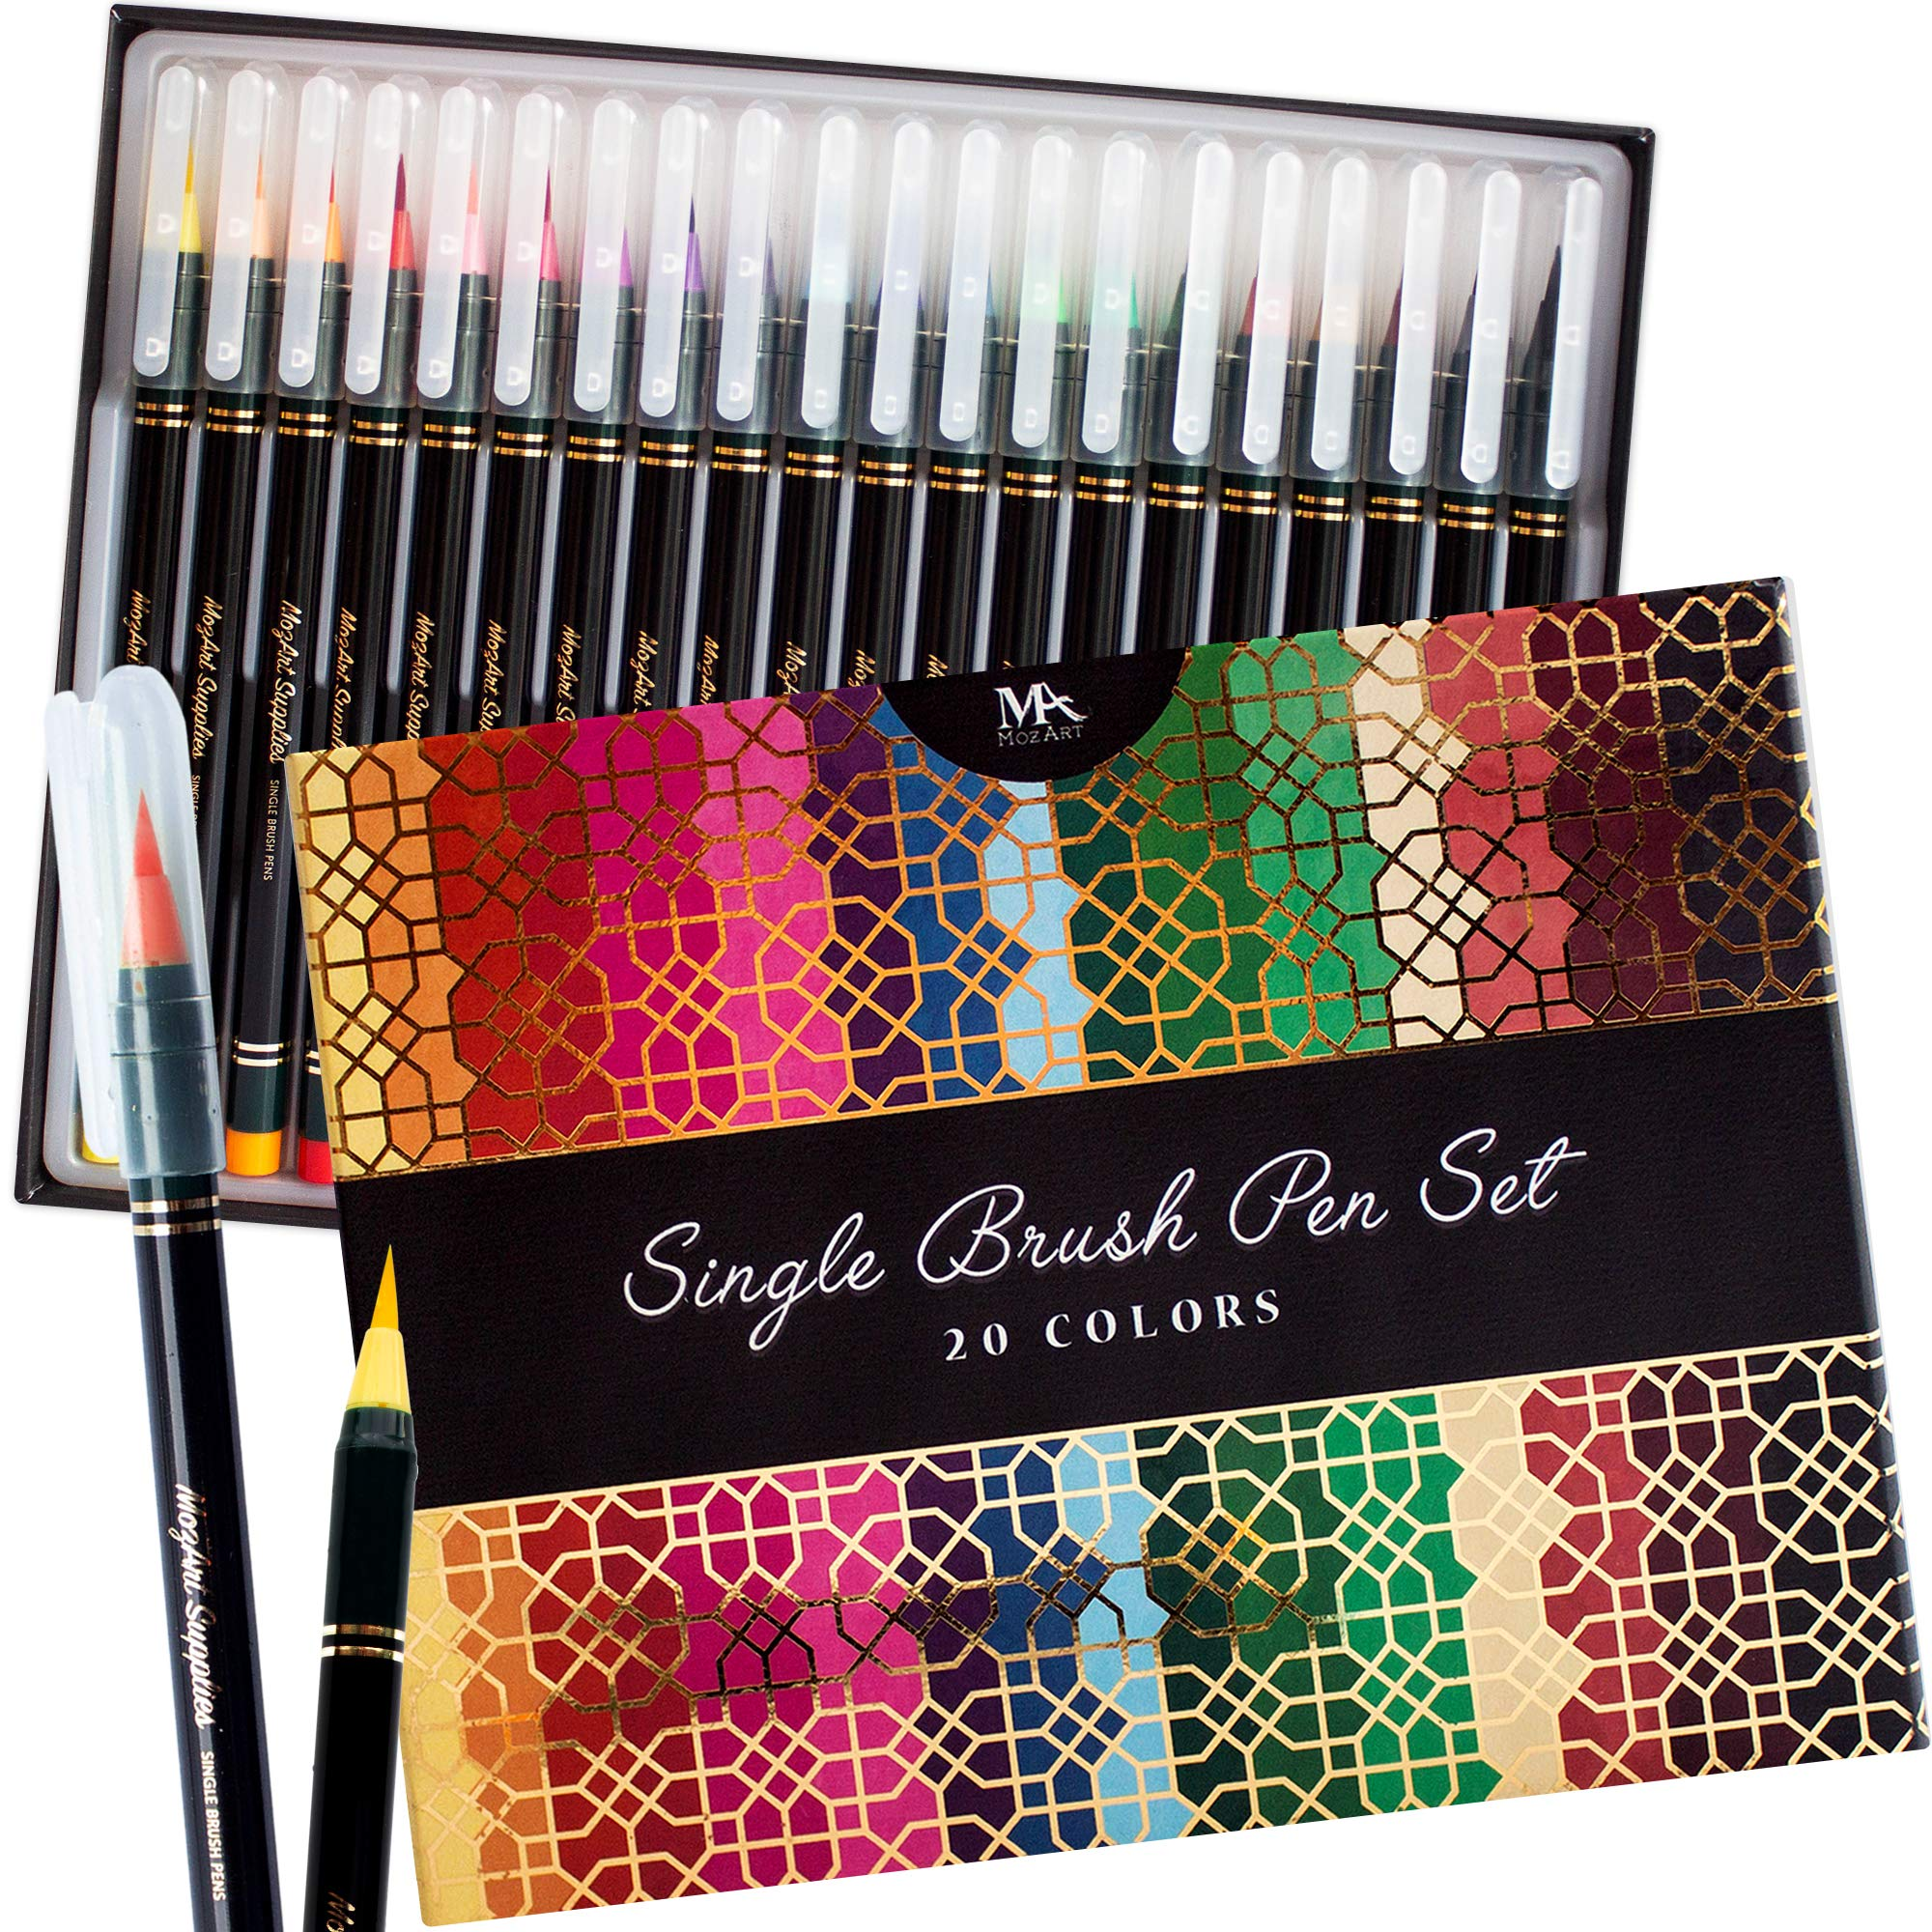 Luxury Single Brush Pen Gift Box - 20 Premium Colors, Soft, Flexible Real Brush Tips- Water Based Ink for Watercolor Effects - Ideal for artists, students and calligraphers - MozArt Supplies by MozArt Supplies